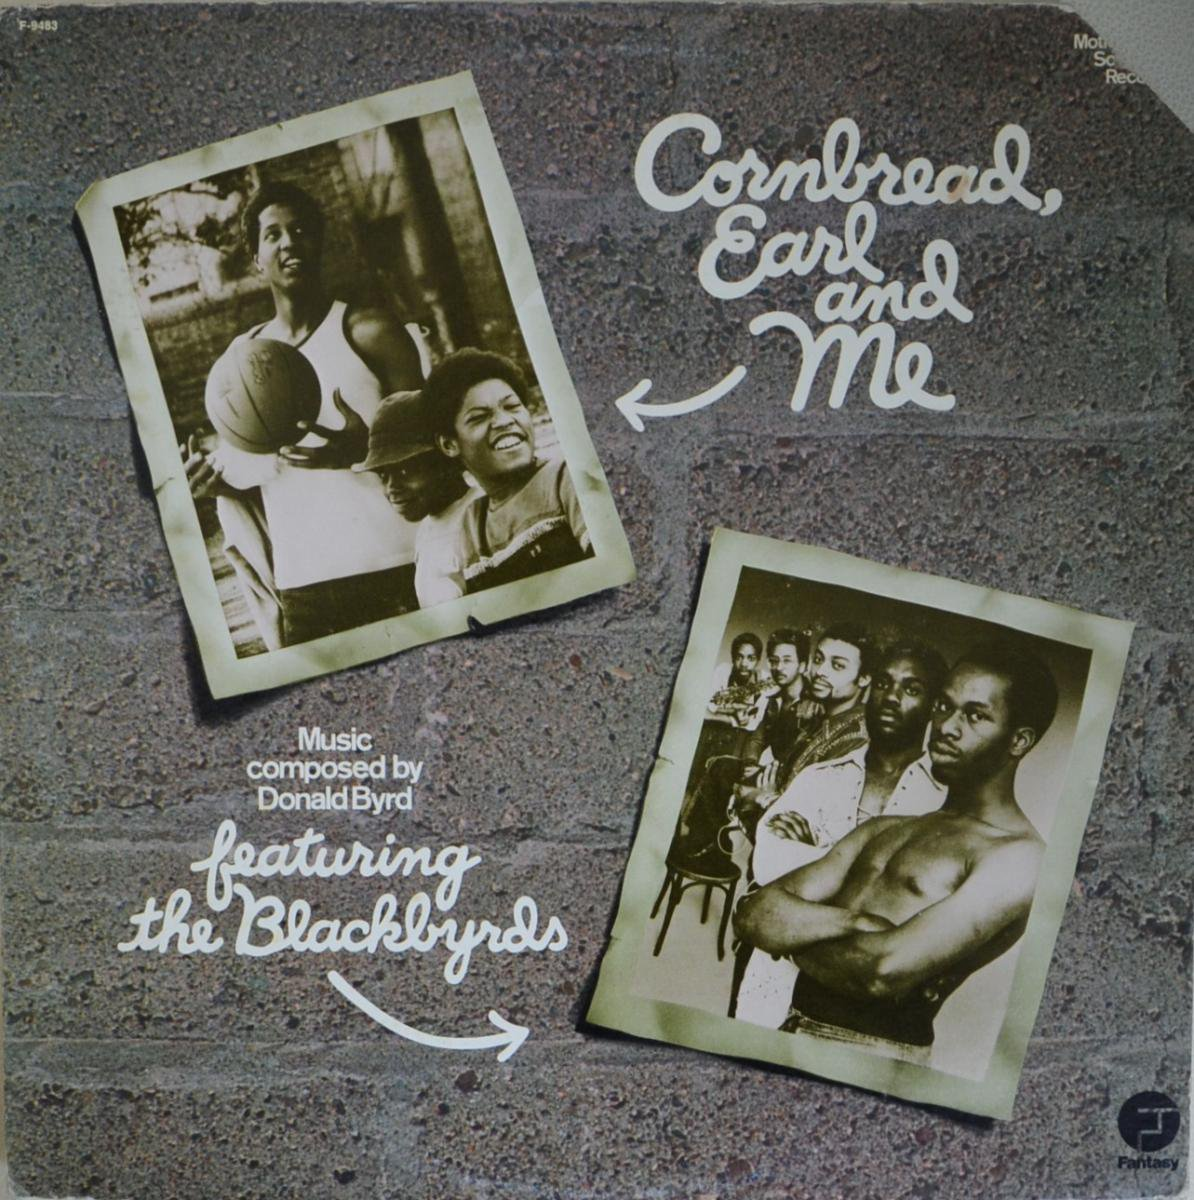 O.S.T.(THE BLACKBYRDS) / CORNBREAD, EARL AND ME (LP)